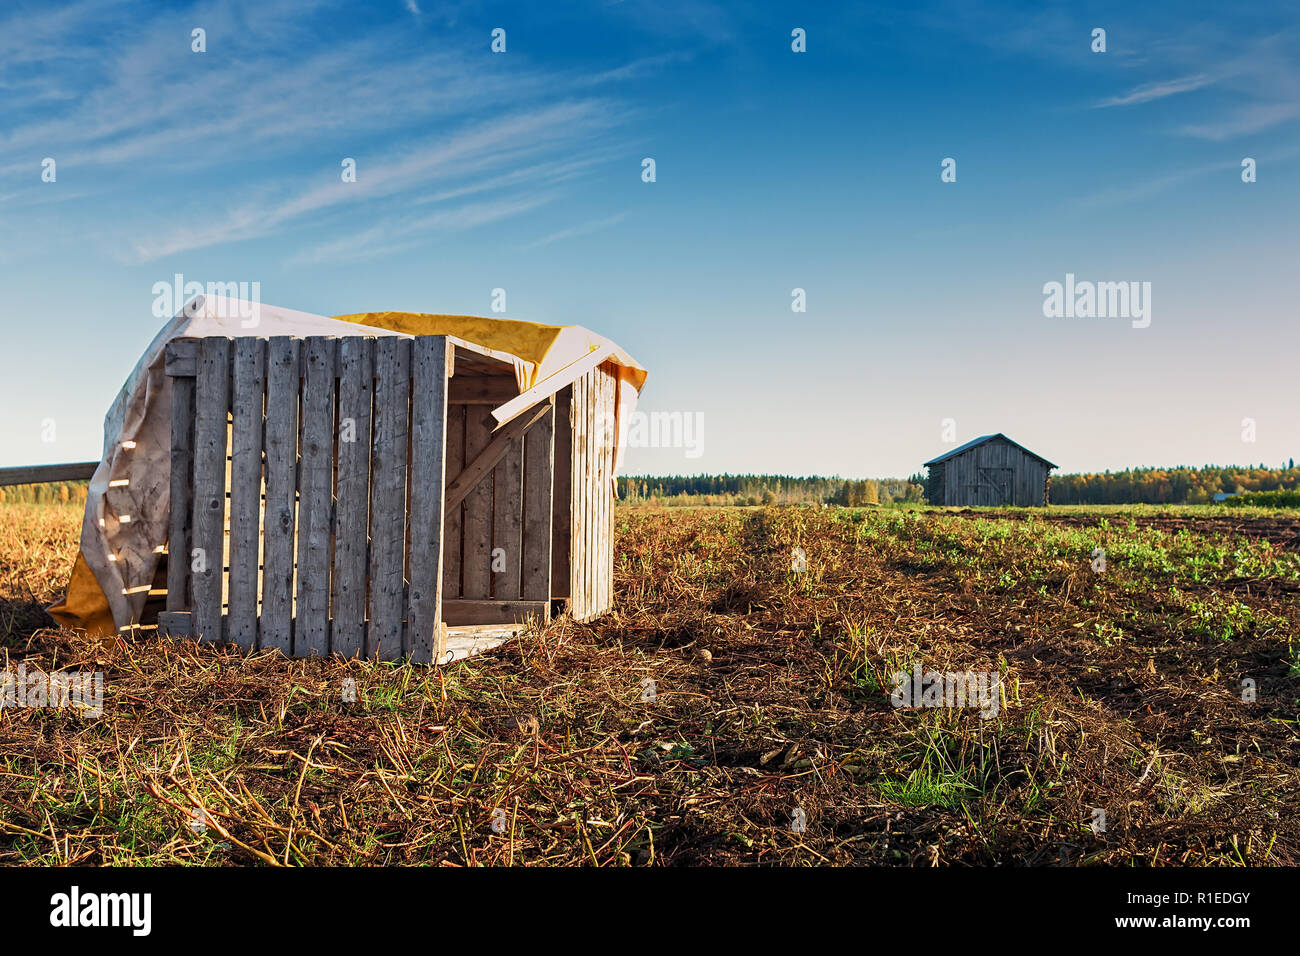 Two old wooden crates on an autumn field at the Northern Finland. The crates are used for storing potatoes. - Stock Image